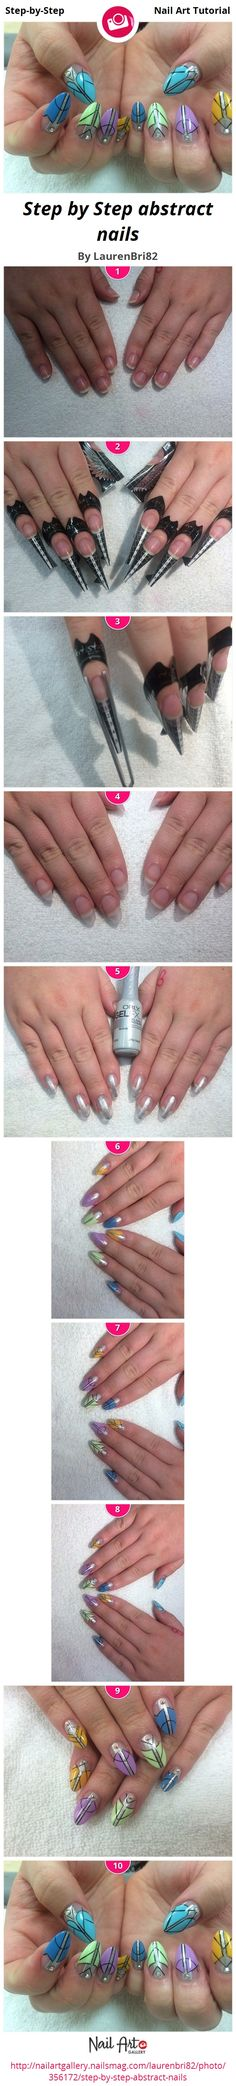 Step by Step abstract nails - Nail Art Step-by-Step Tutorial Photos